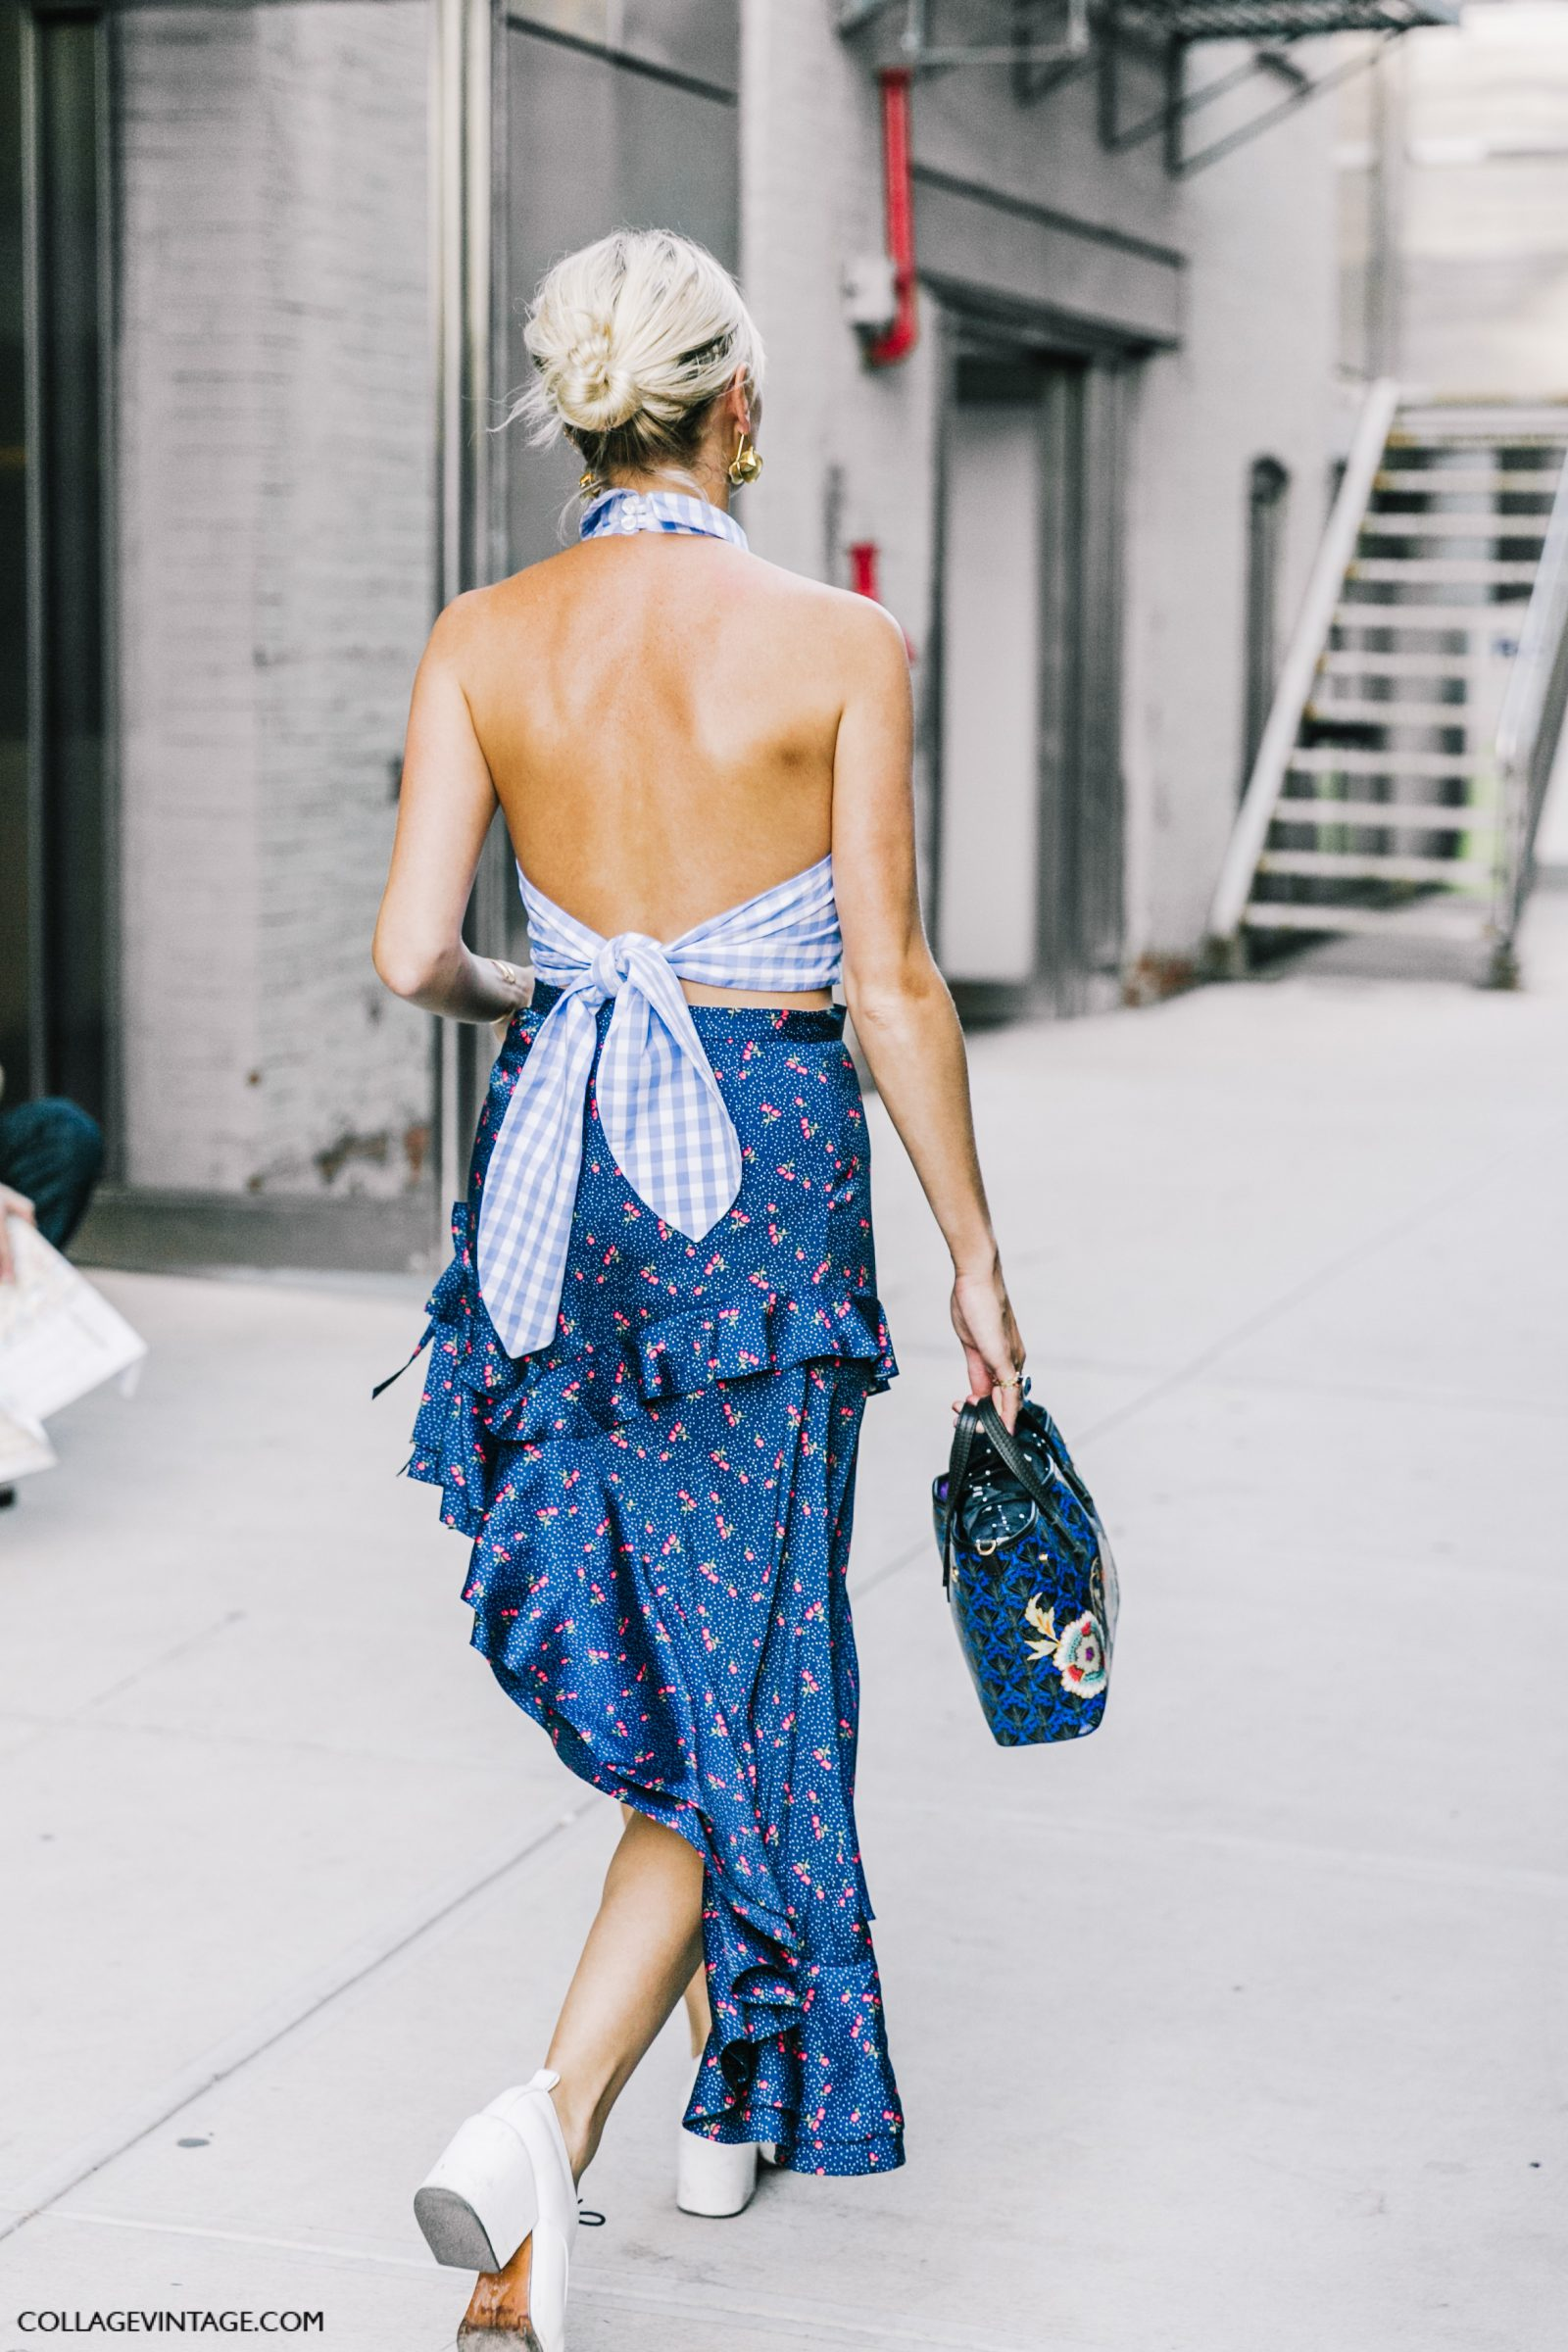 nyfw-new_york_fashion_week_ss17-street_style-outfits-collage_vintage-vintage-mansur_gavriel-rodarte-coach-248